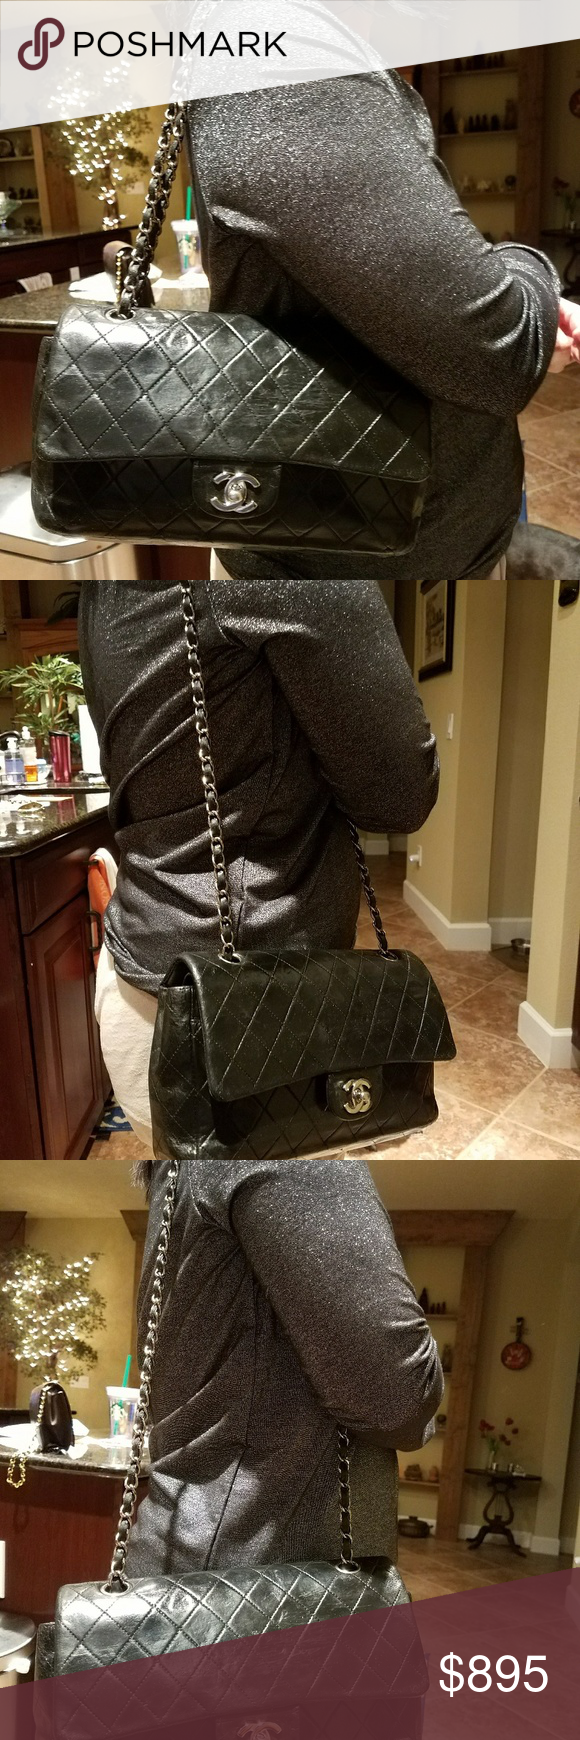 Authentic Chanel Quilted Lambskin DoubleFlap Palla ...